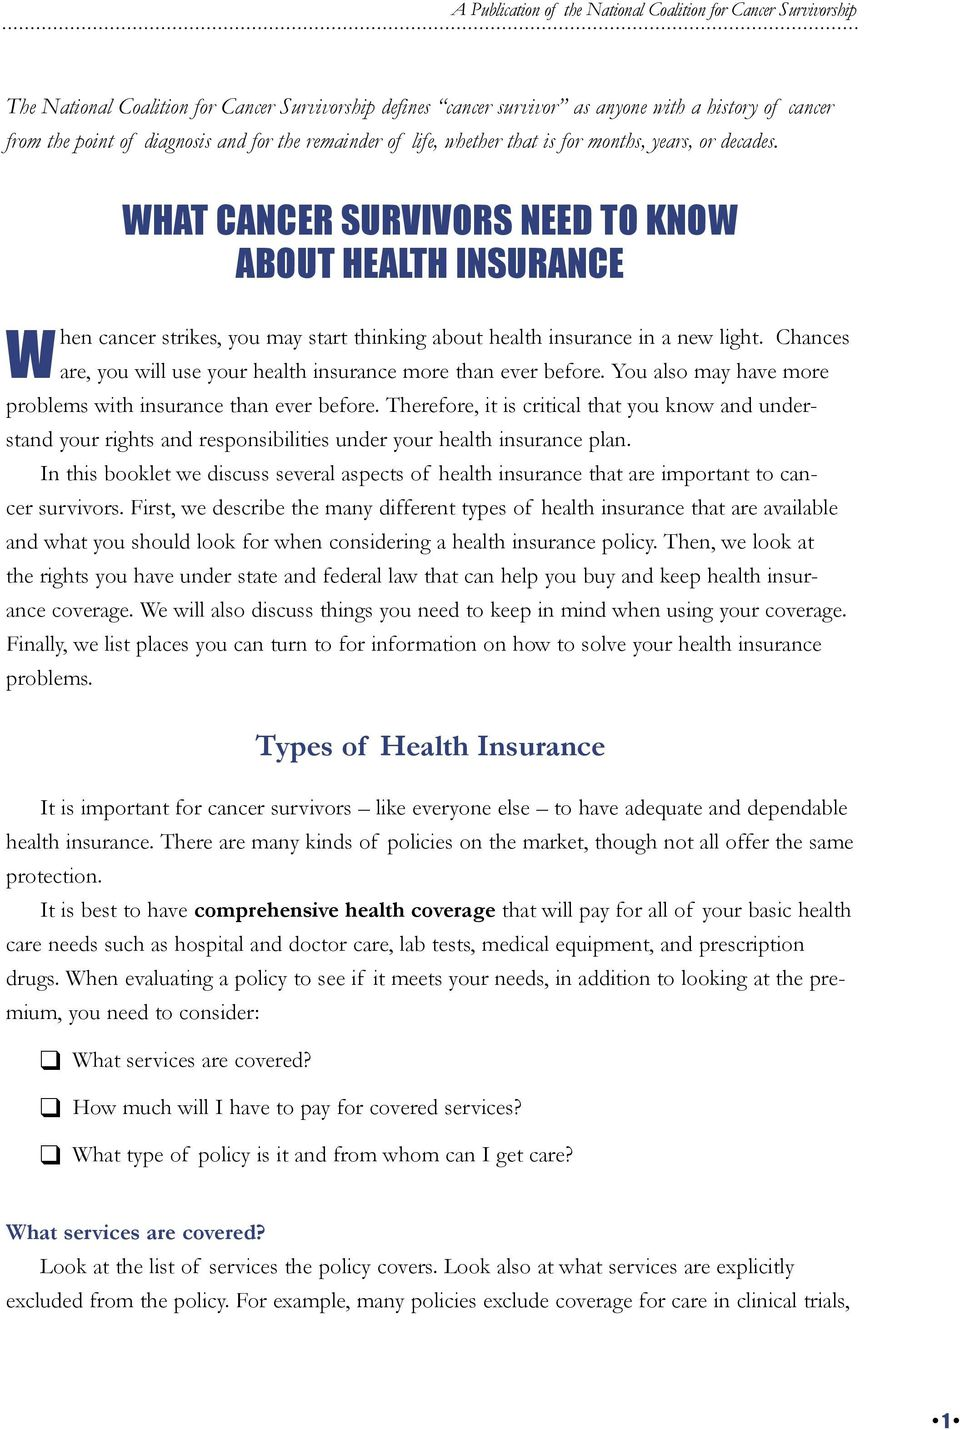 WHAT CANCER SURVIVORS NEED TO KNOW ABOUT HEALTH INSURANCE When cancer strikes, you may start thinking about health insurance in a new light.